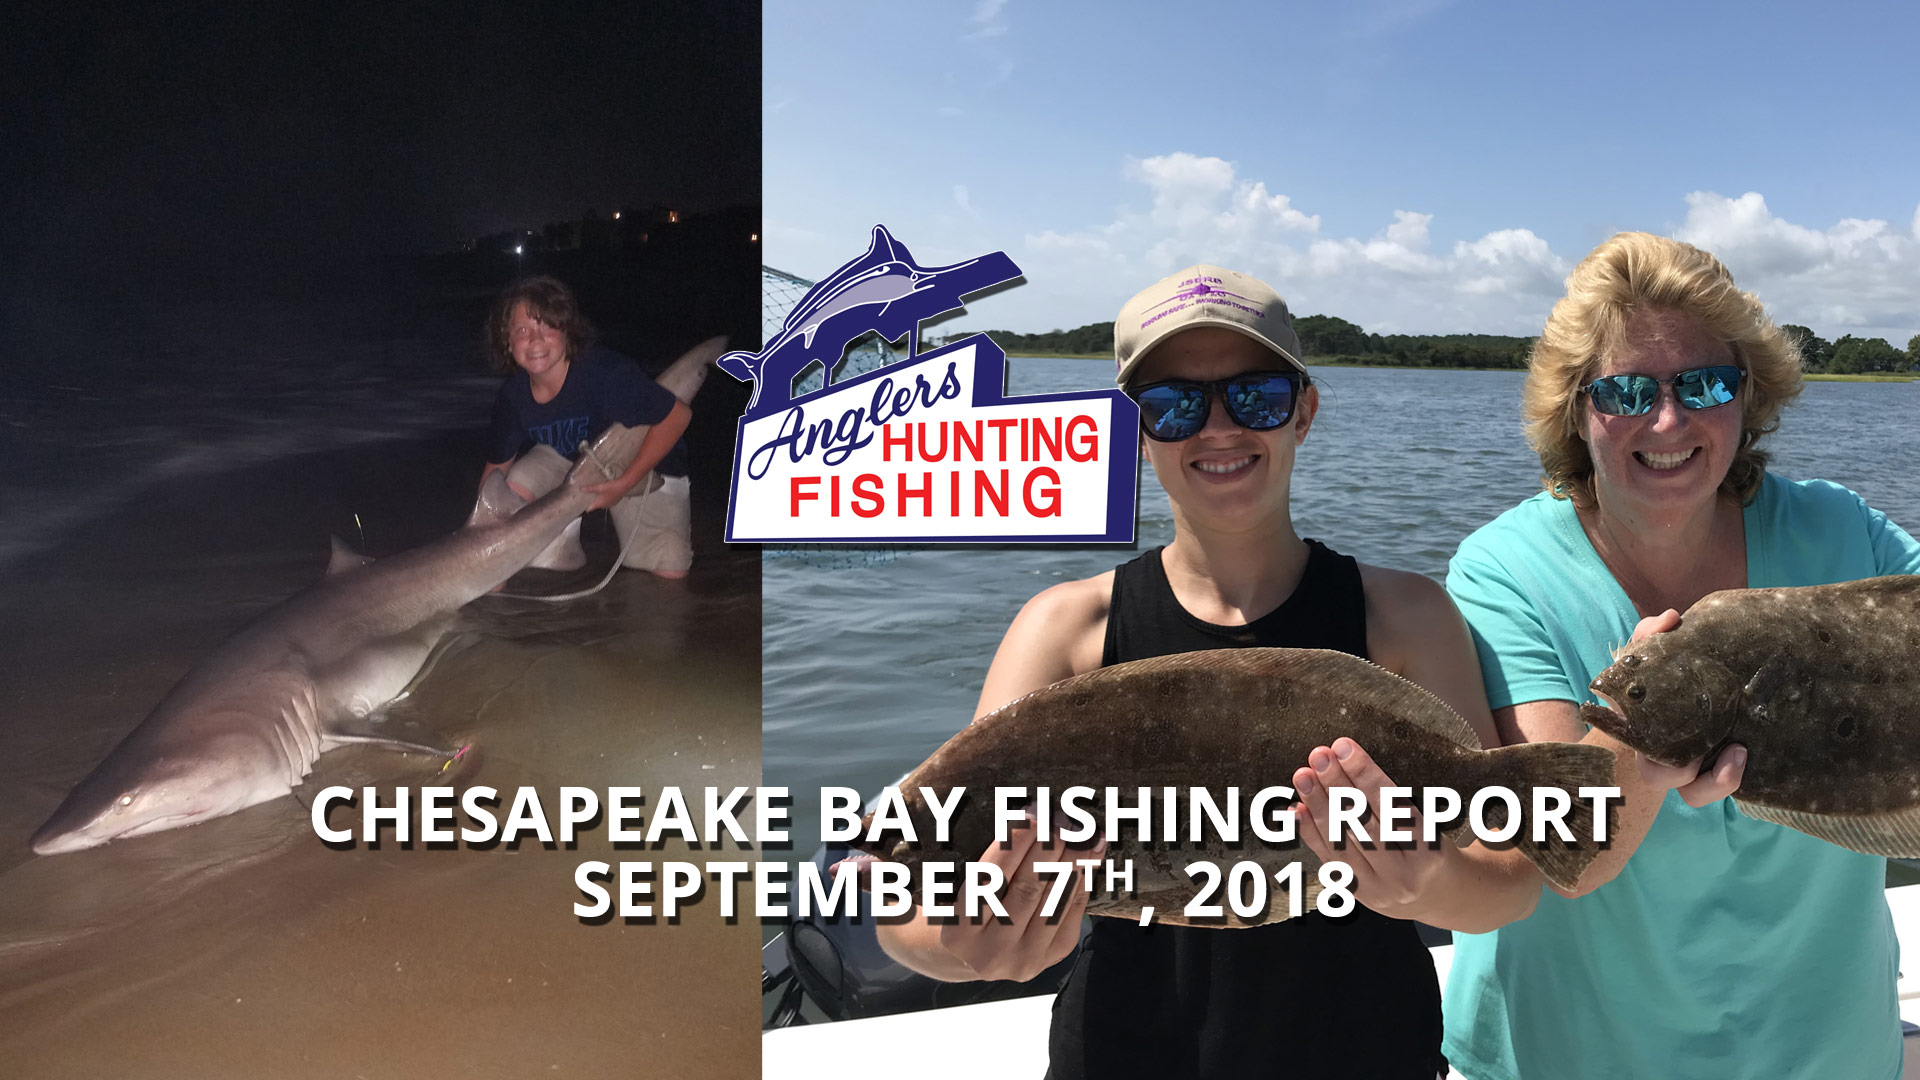 Chesapeake Bay Fishing Report - September 7th, 2018